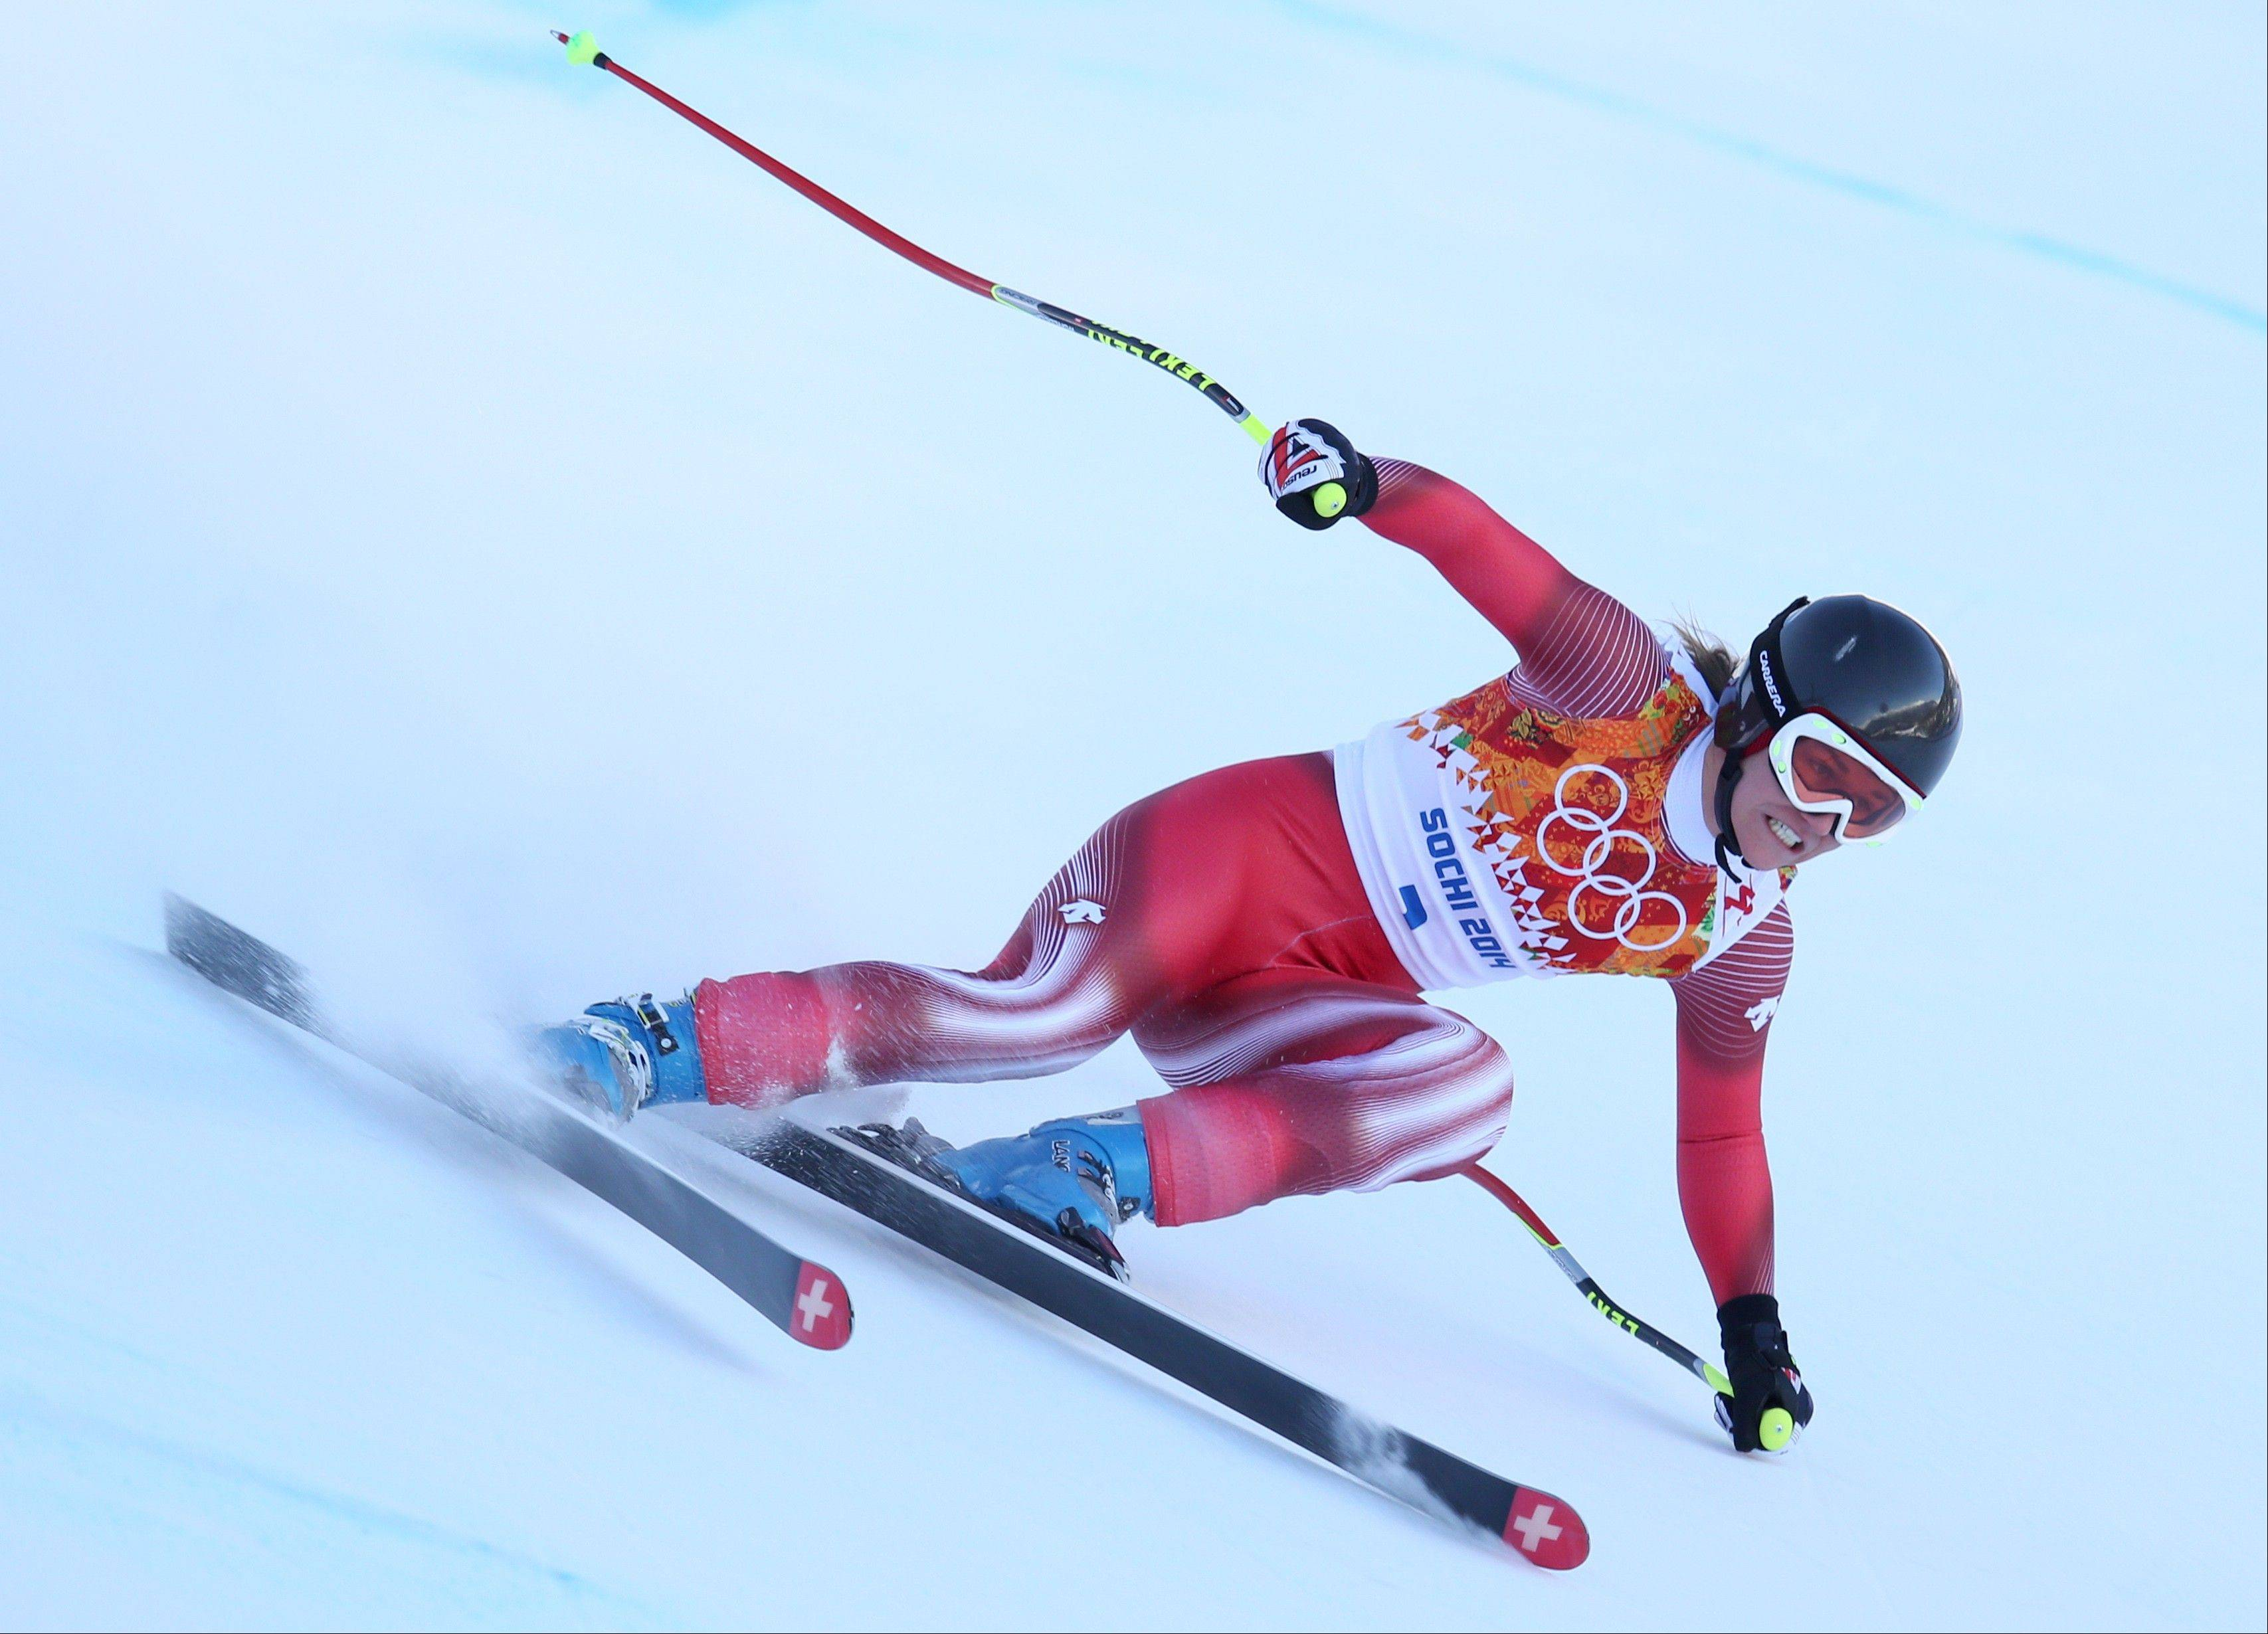 Switzerland�s Fabienne Suter makes a turn Friday in a women�s downhill training run for the Sochi 2014 Winter Olympics in Krasnaya Polyana, Russia.